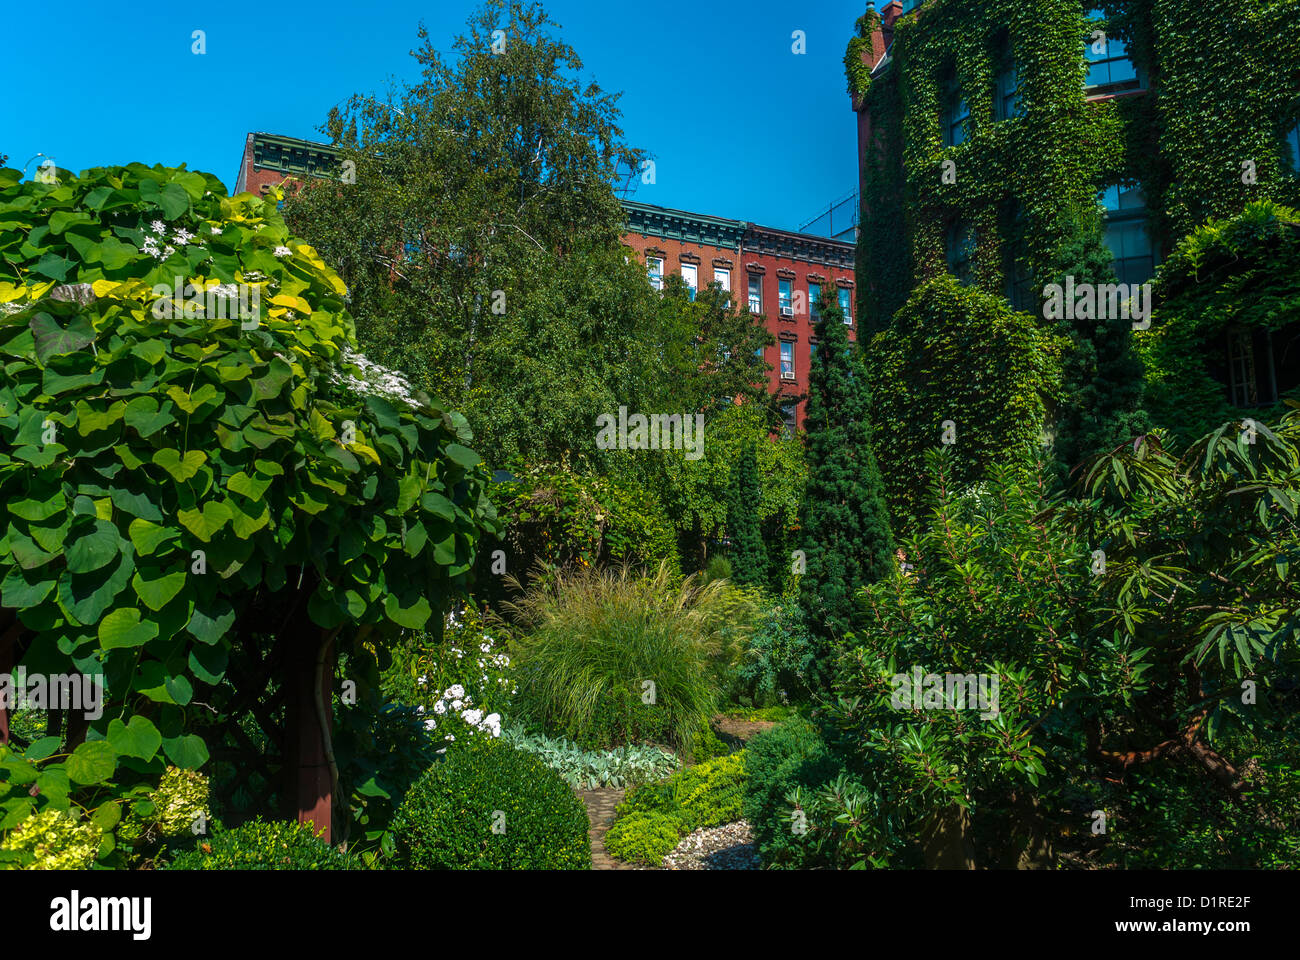 New York CIty, NY, USA, East Village, E. 6th St., Urban Botanical Community Garden Scenic, Summer, Local neighbourhoods - Stock Image